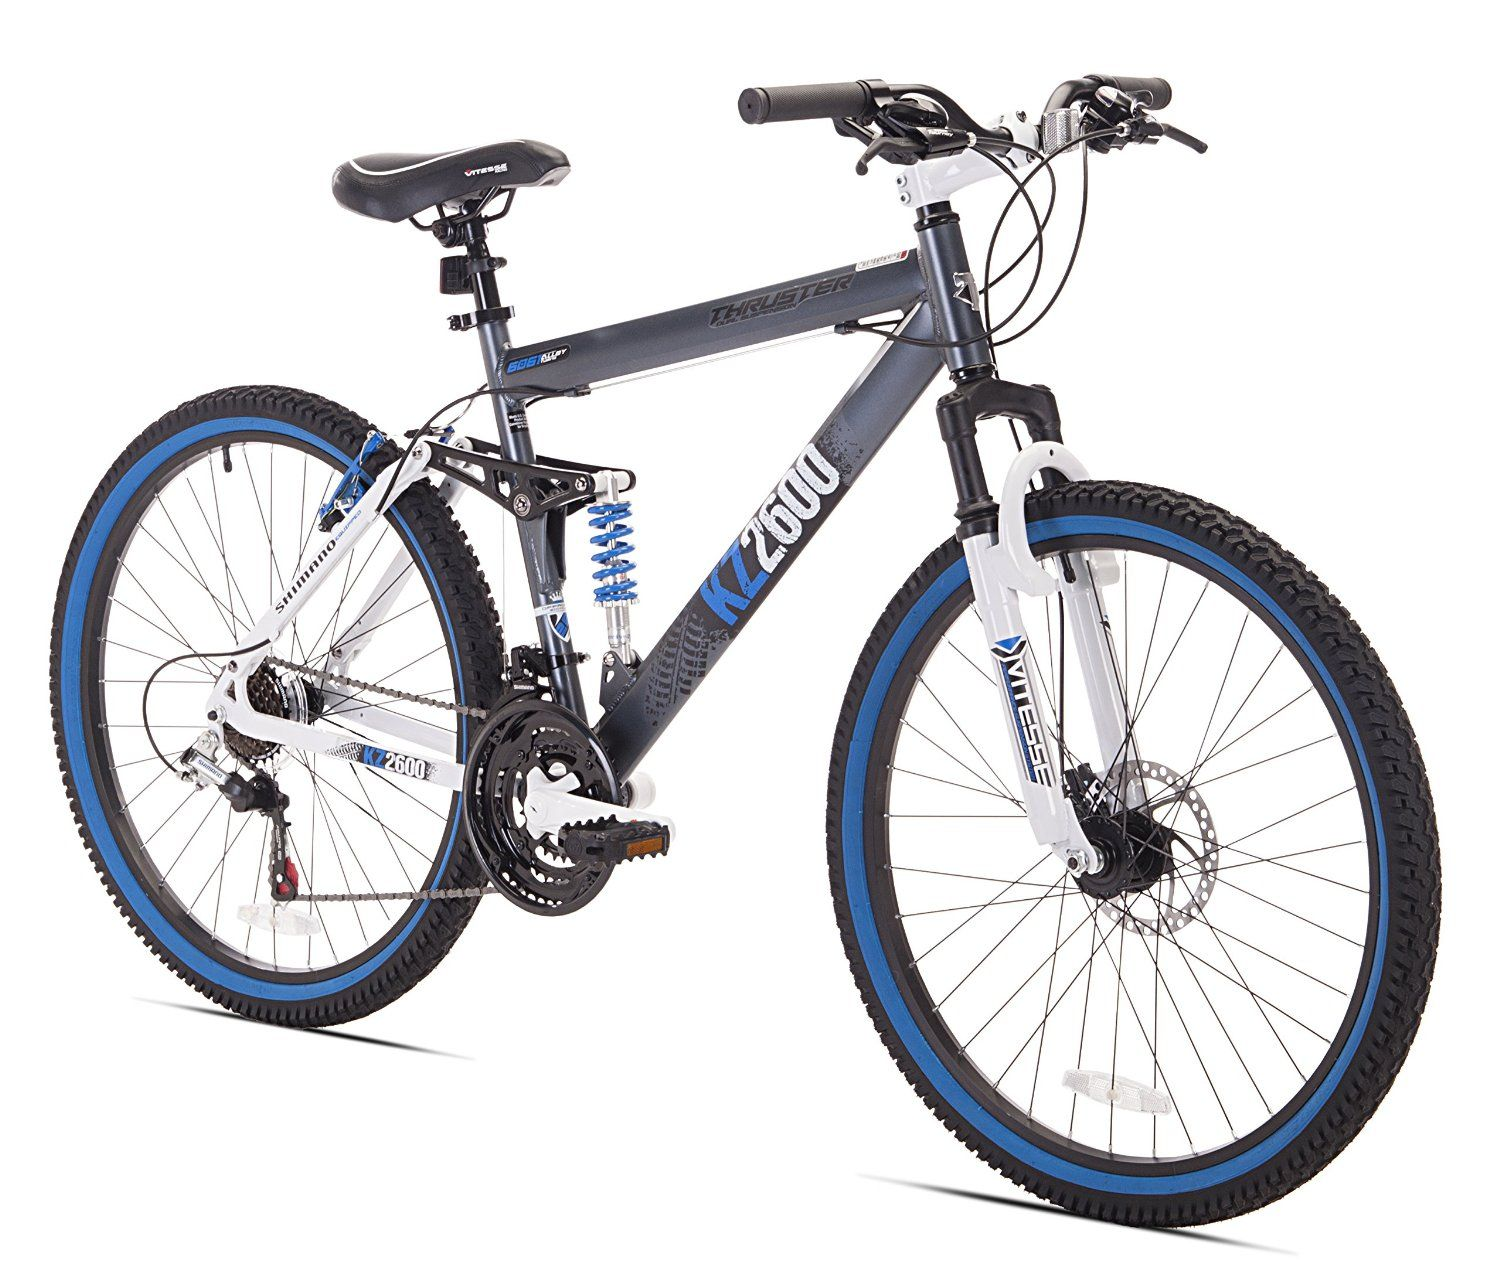 amazon : kent thruster kz2600 dual-suspension mountain bike